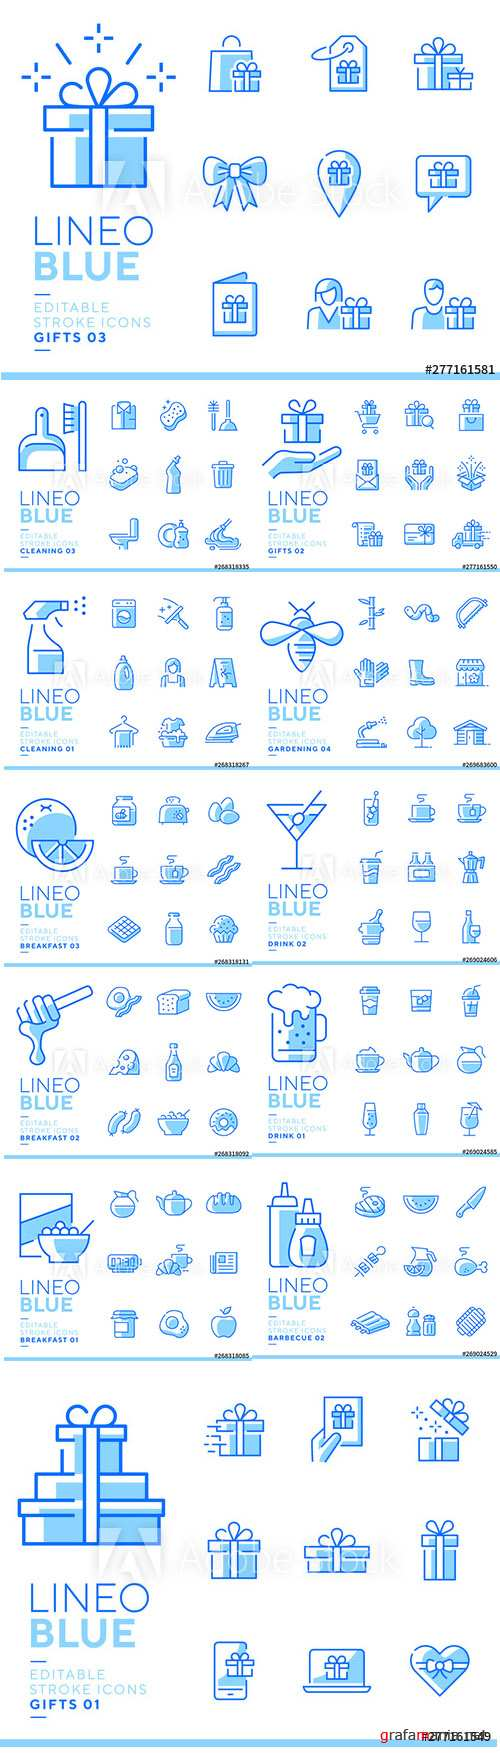 Lineo Blue - Line Icons Vector Pack Vol 4